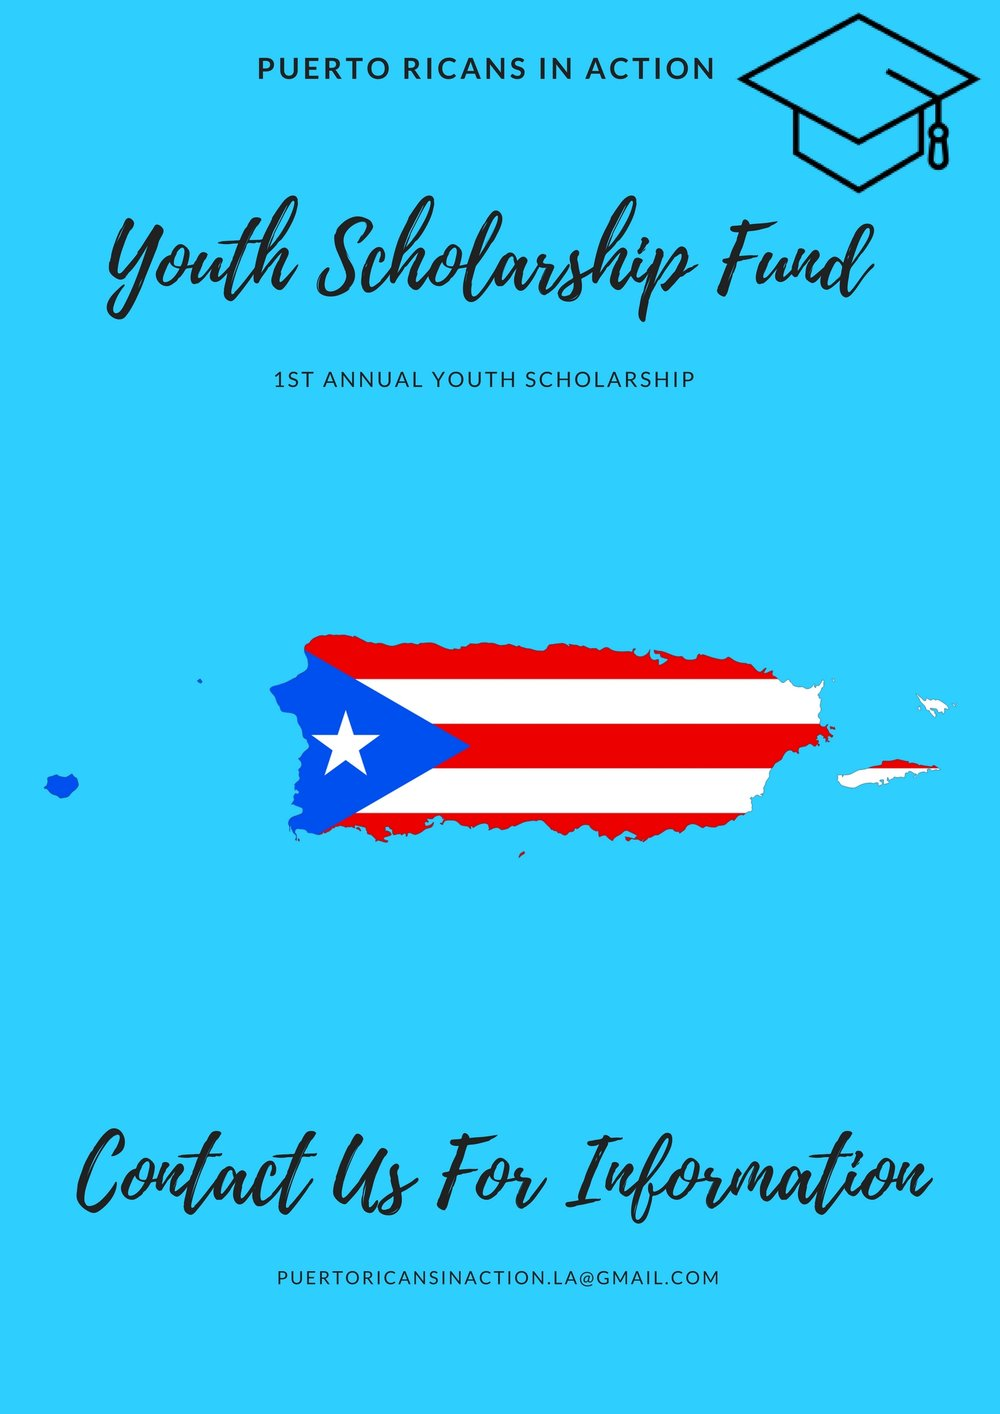 Youth Scholarship Fund